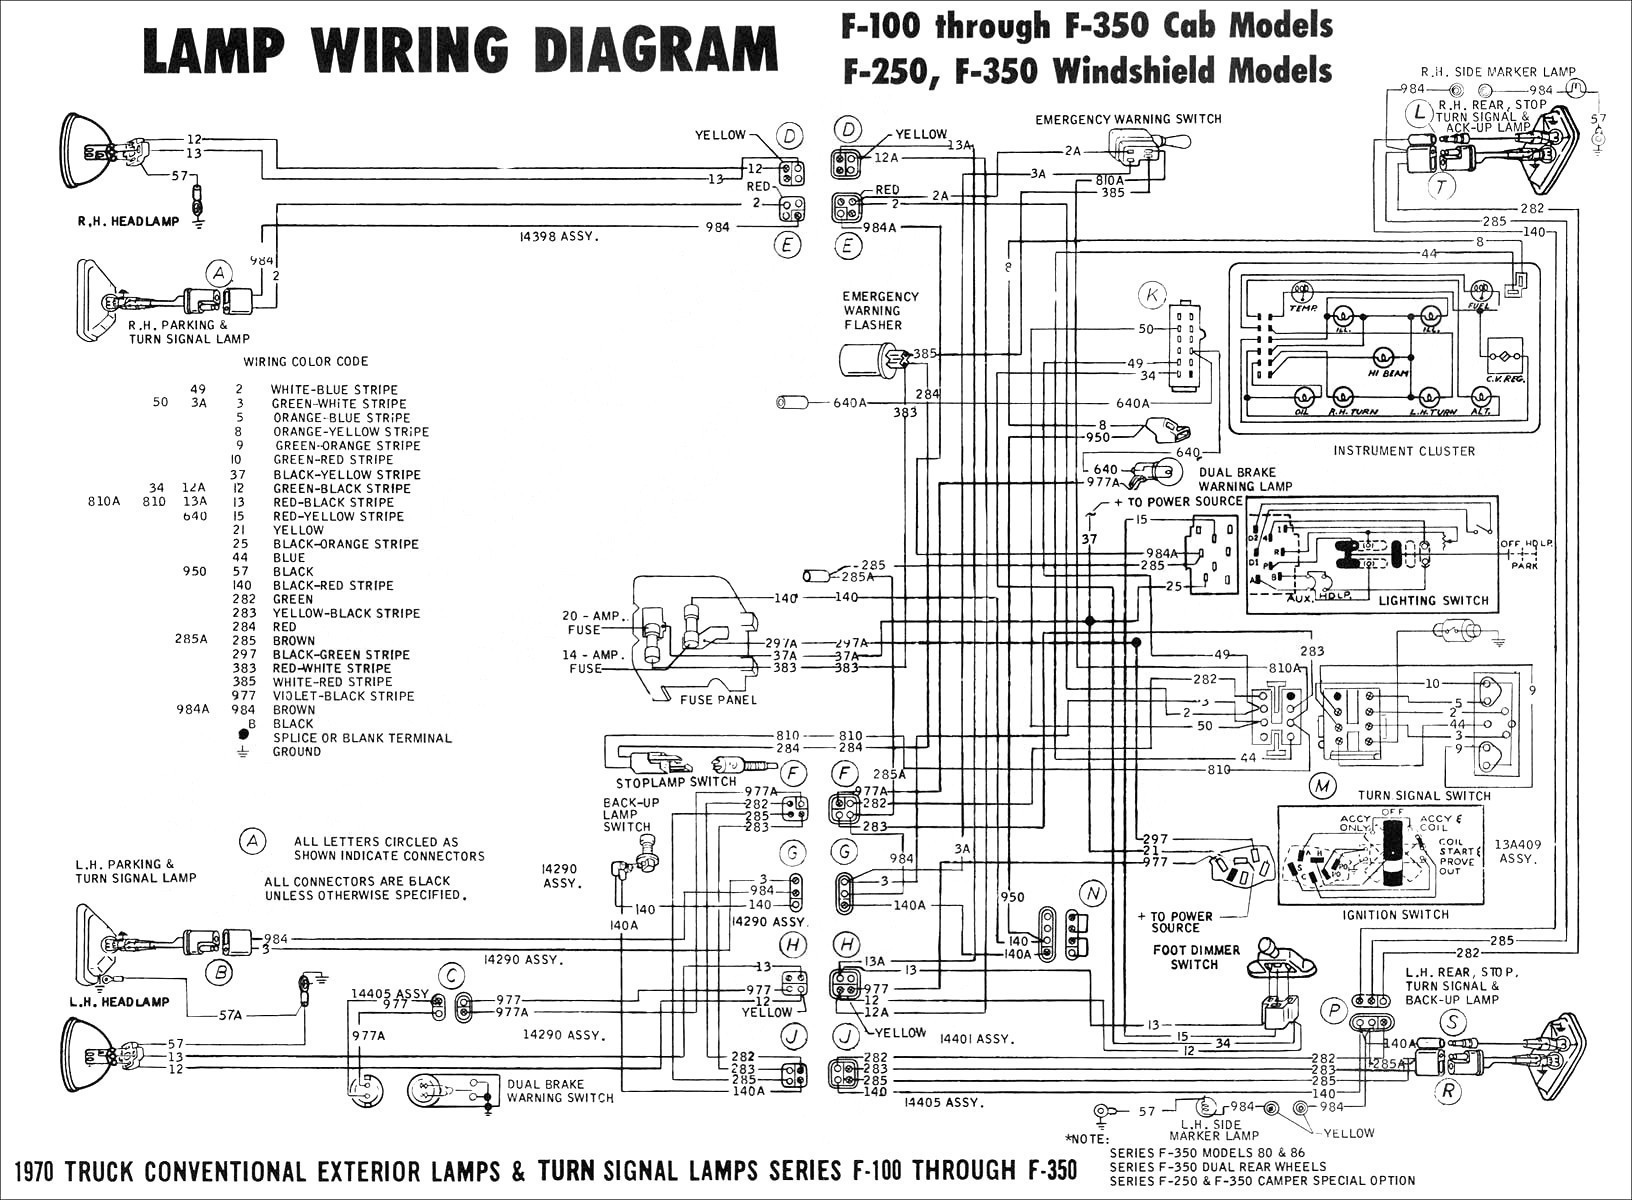 toyota rav4 wiring diagram pdf expert schematics diagram rh atcobennettrecoveries com toyota liteace wiring diagram download toyota hiace wiring diagram